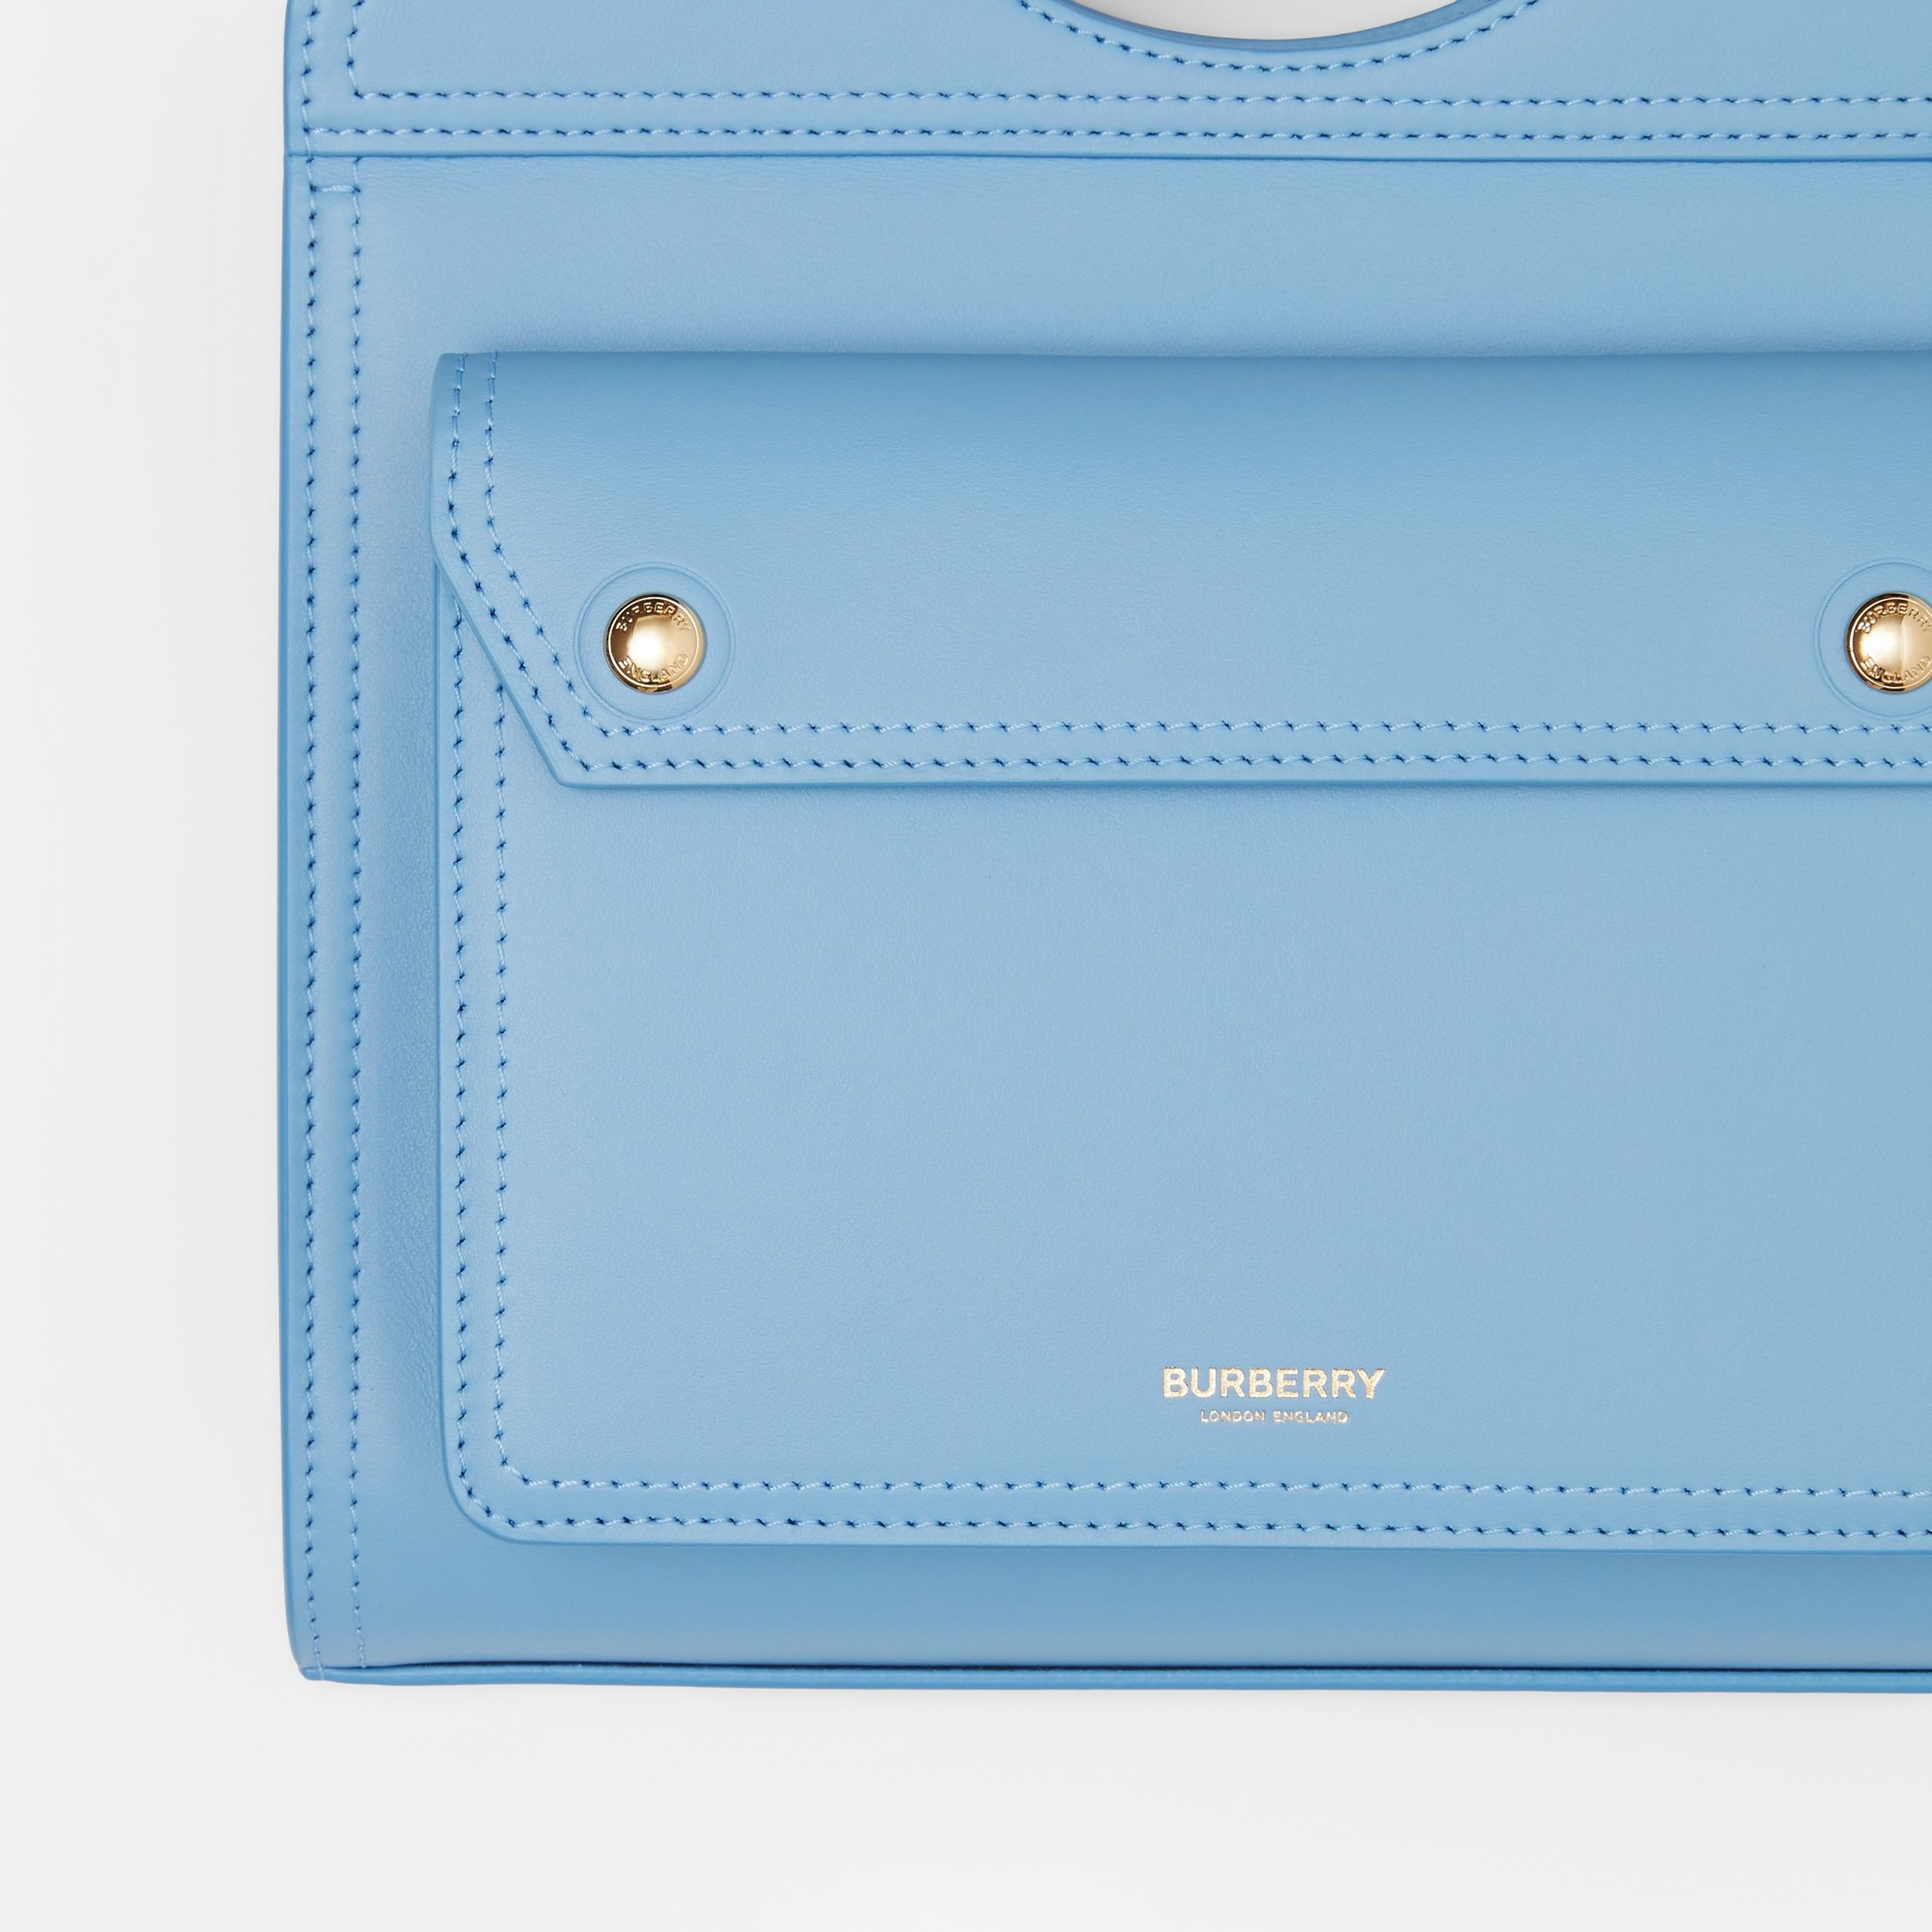 Mini Leather Pocket Bag in Blue Topaz - Women | Burberry Canada - 2